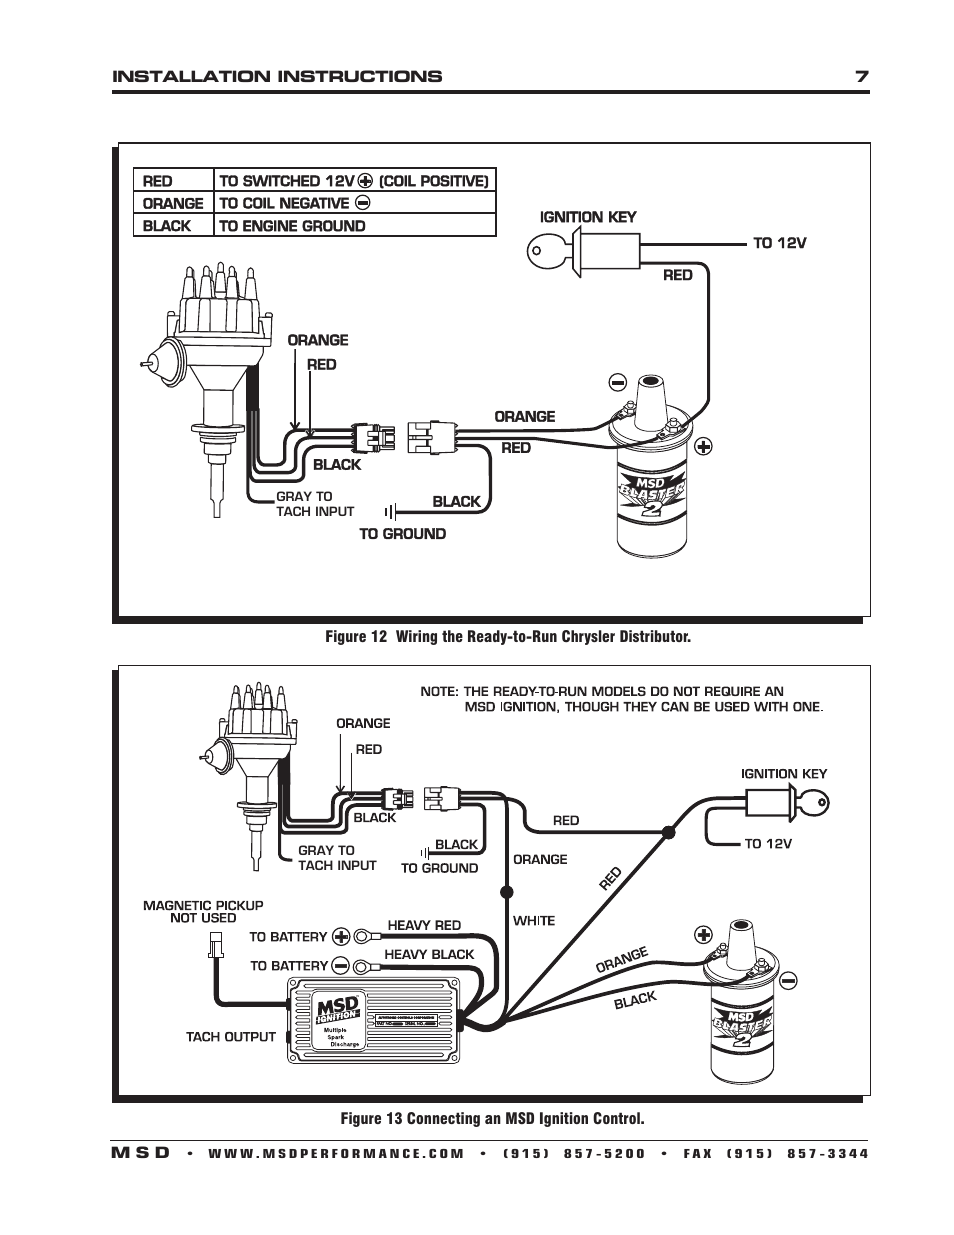 hight resolution of msd 8388 chrysler 318 360 ready to run distributor installation user manual page 7 8 also for 8386 chrysler 383 400 ready to run distributor